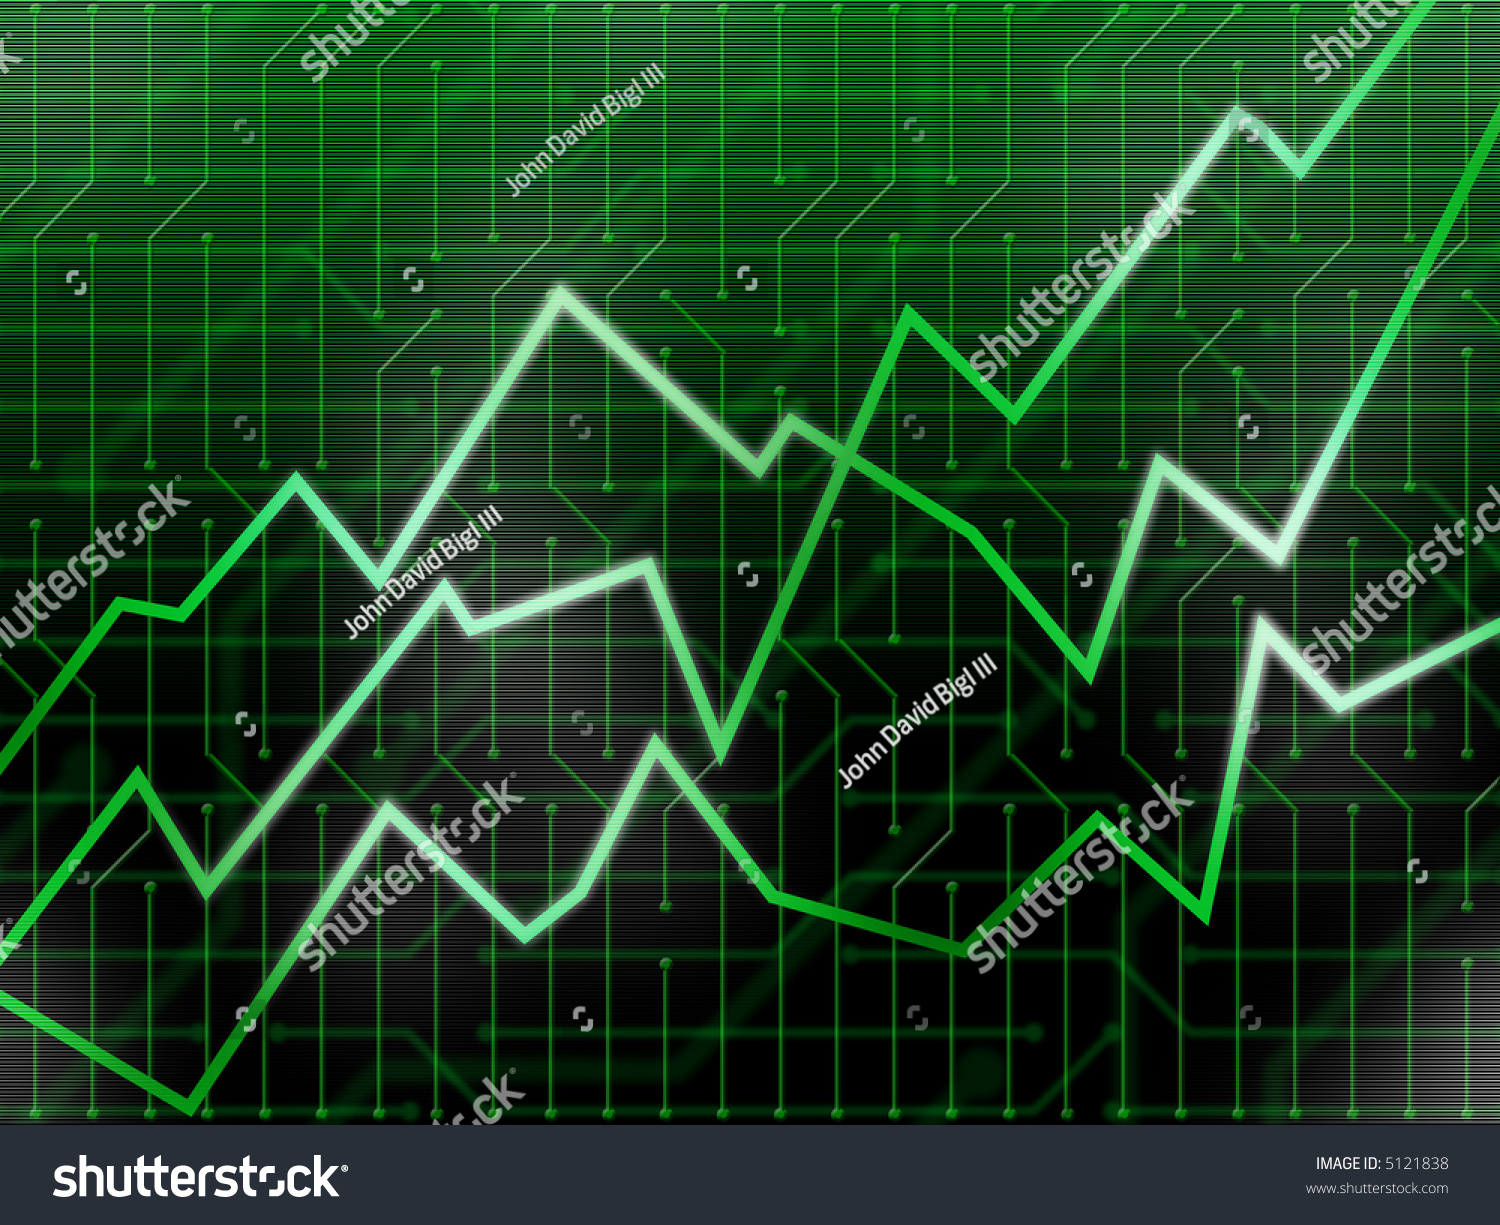 Financial Chart Showing Uptrend On Circuitry Stock Illustration Figure 3 Candlestick Circuit Use With Background